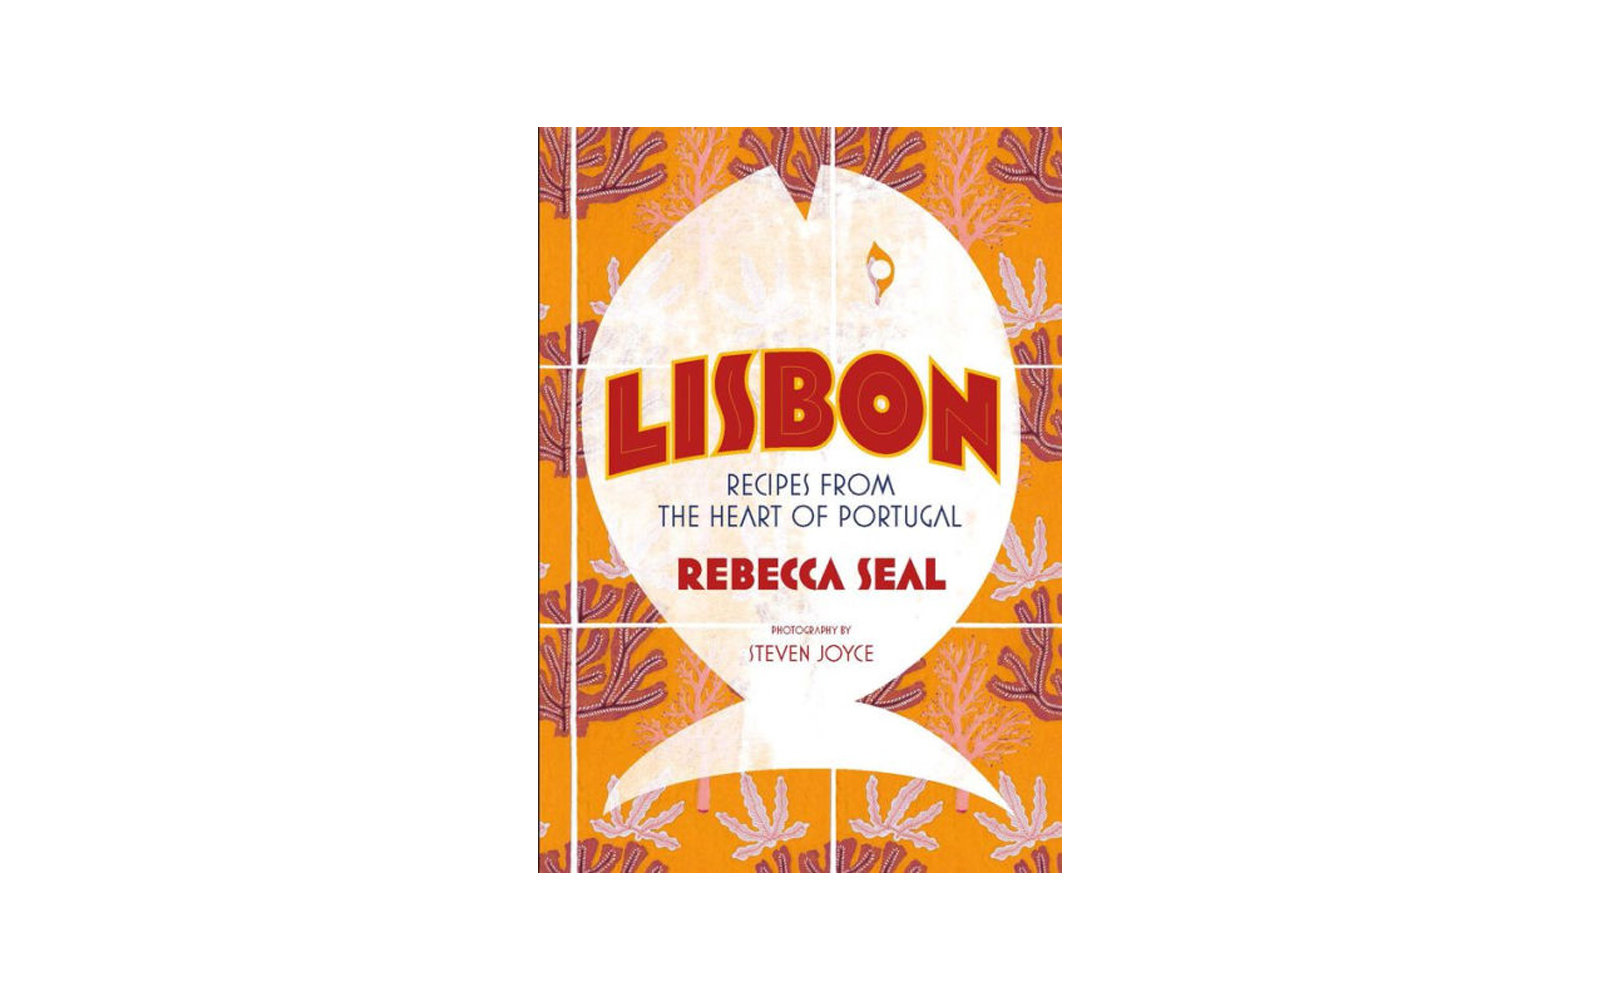 Lisbon, Recipes from the Heart of Portugal, by Rebecca Seal